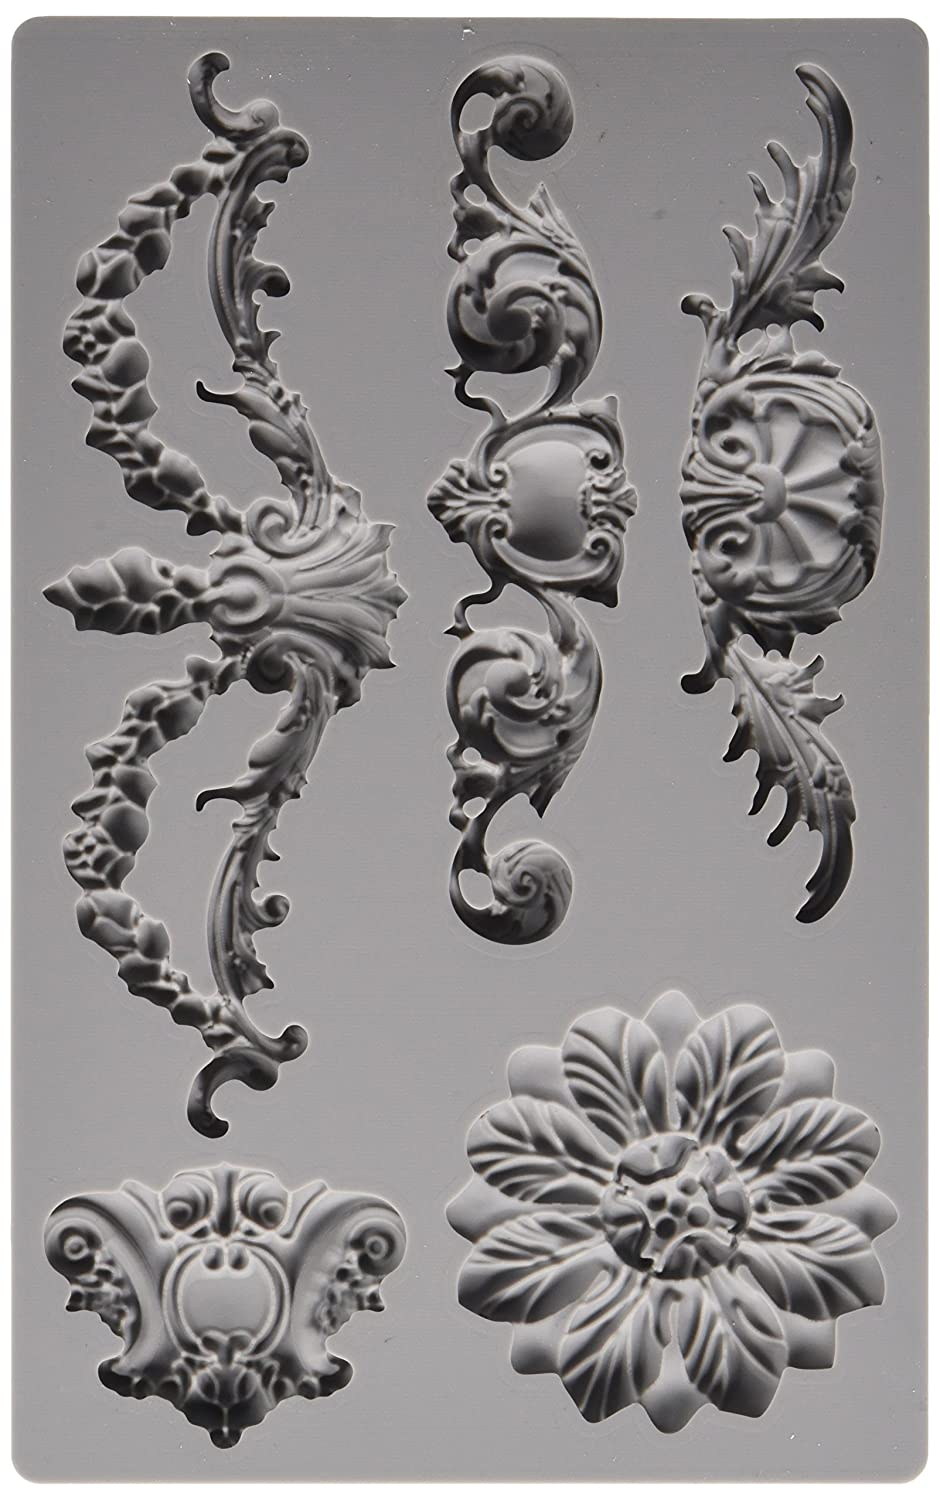 Prima Marketing 814793 Baroque No.3 Iron Orchid Designs Vintage Art Decor Mold, Grey Prima Maketing Inc